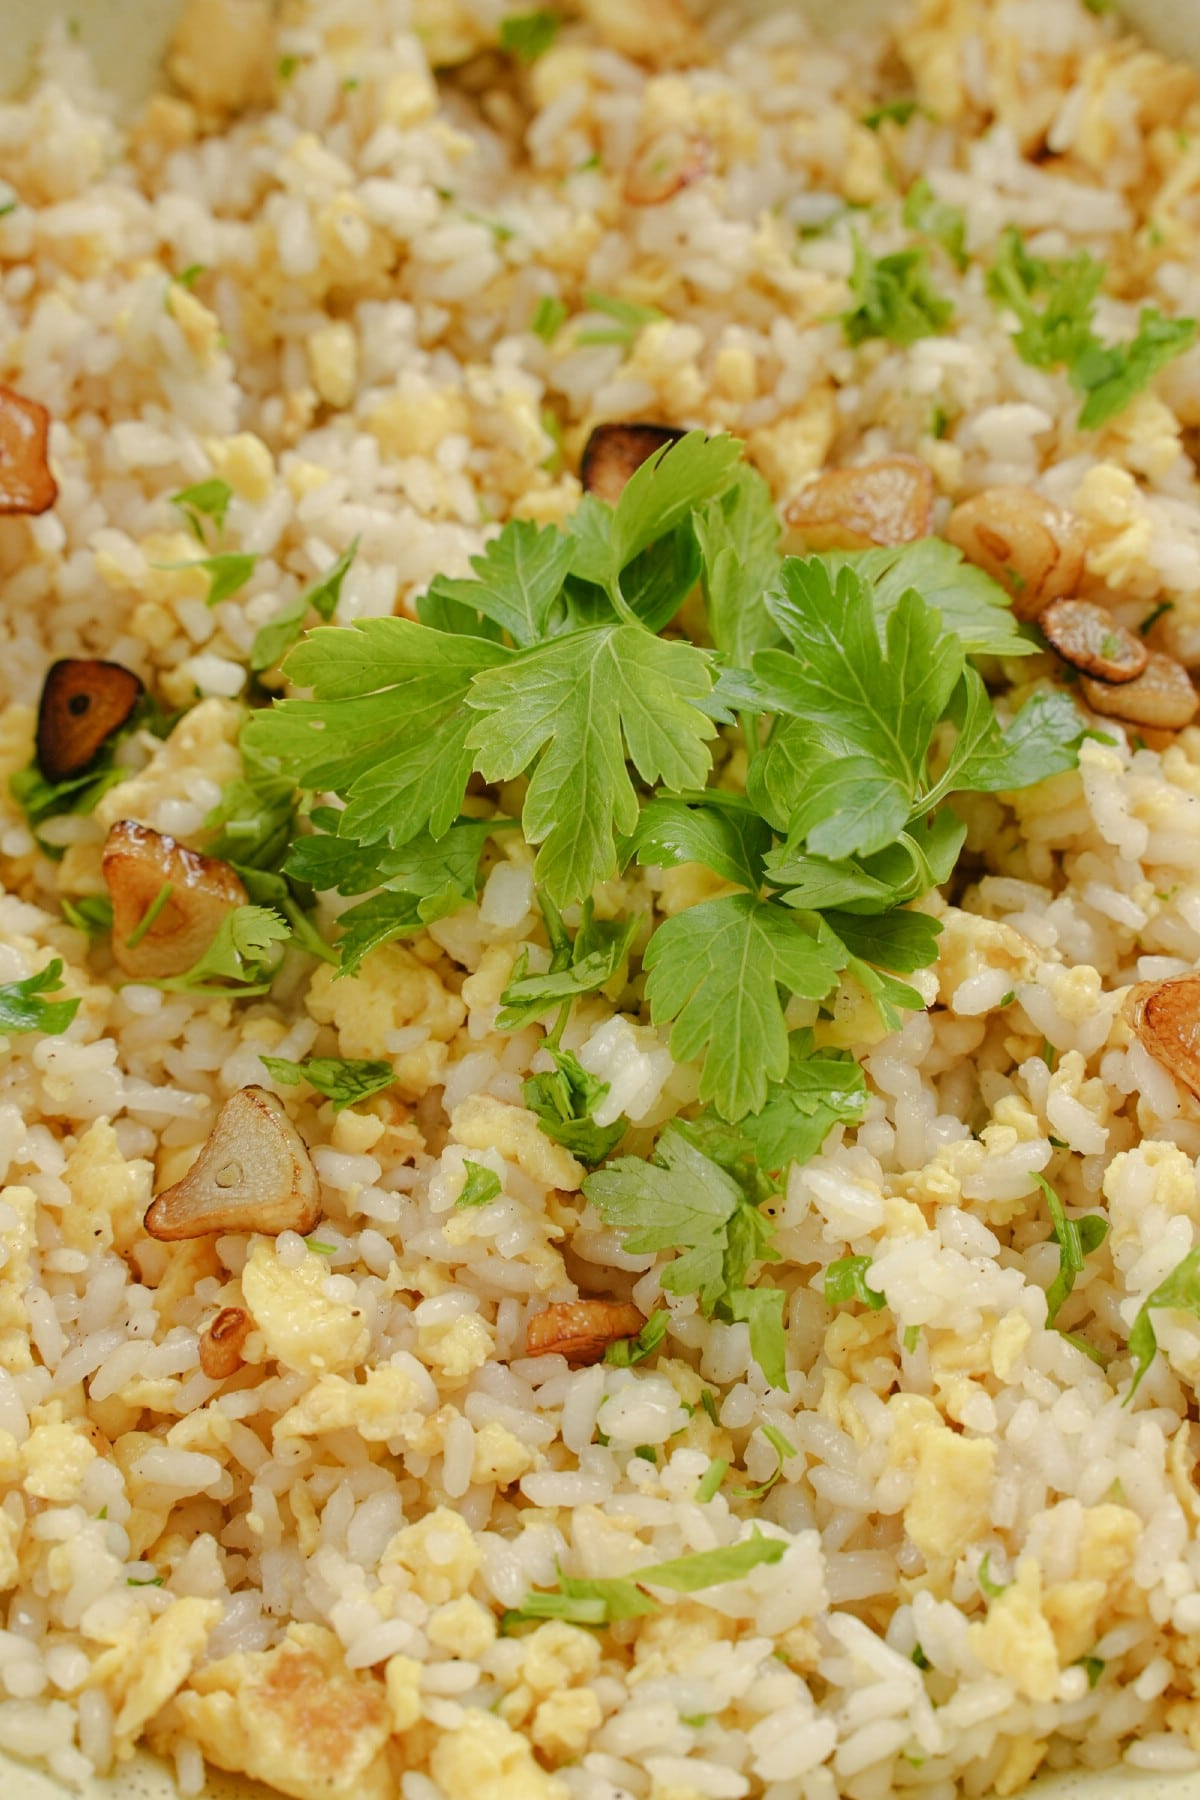 Close up image of rice in bowl with sliced garlic chips and parsley on top